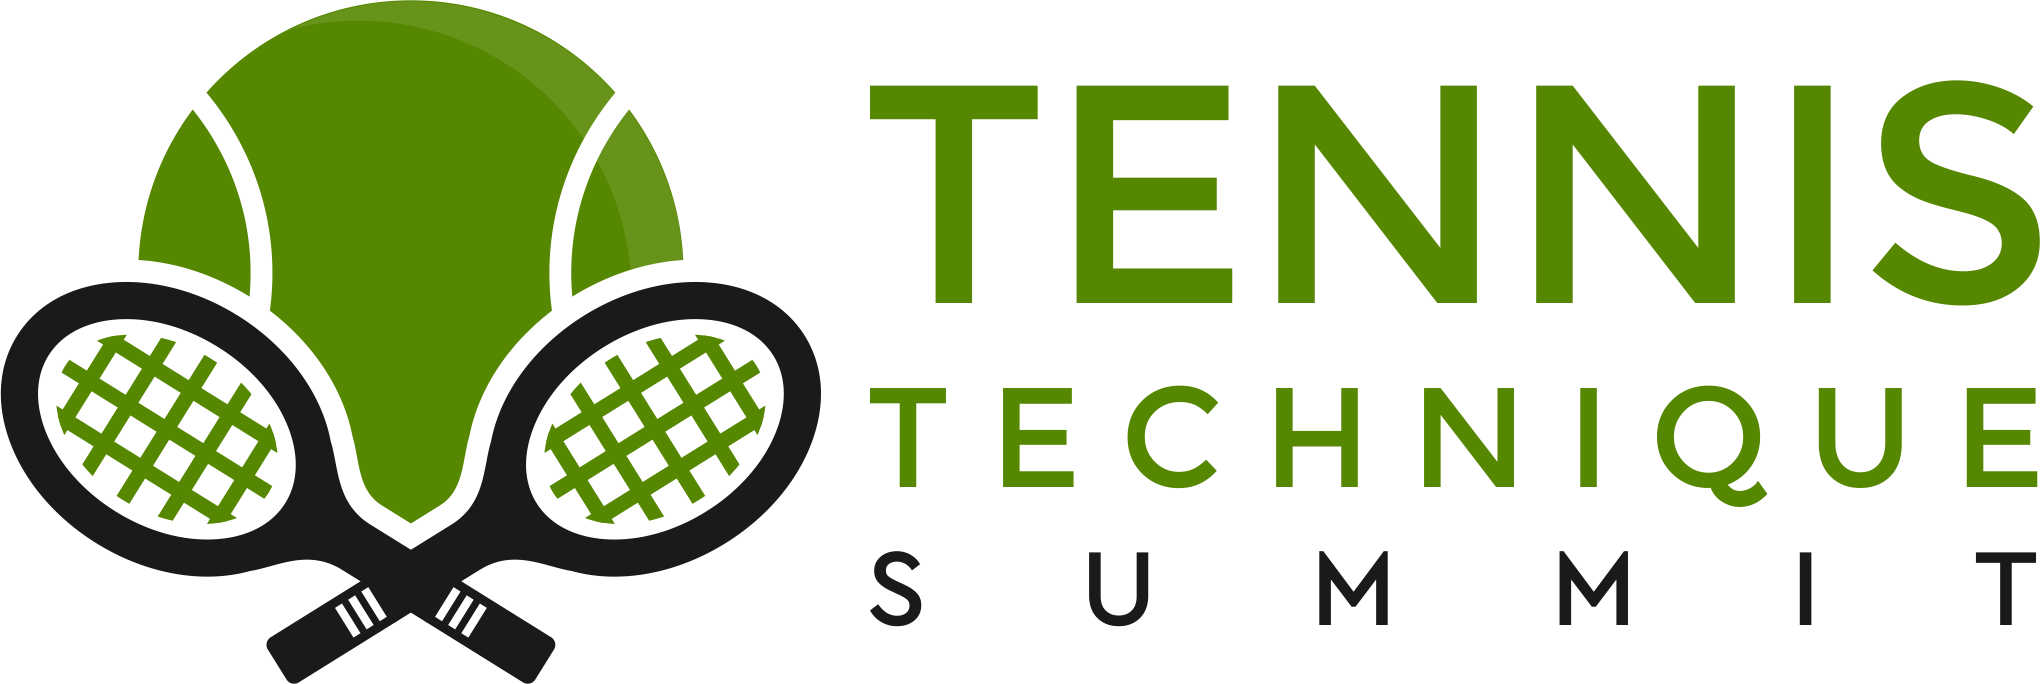 Tennis Technique Summit Logo